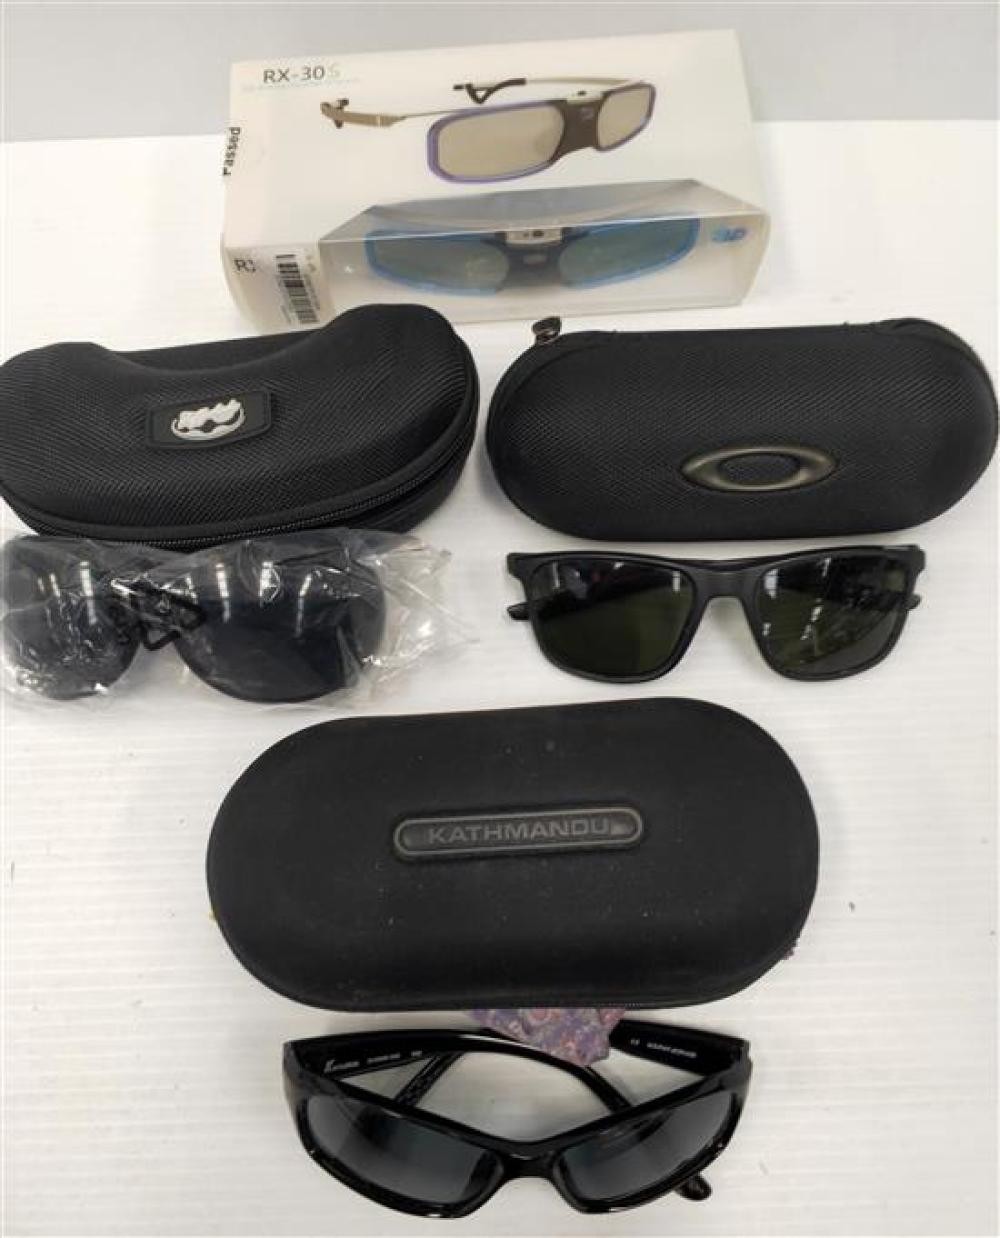 A bag of four assorted sunglasses incl. The Fylshades & RX-30S